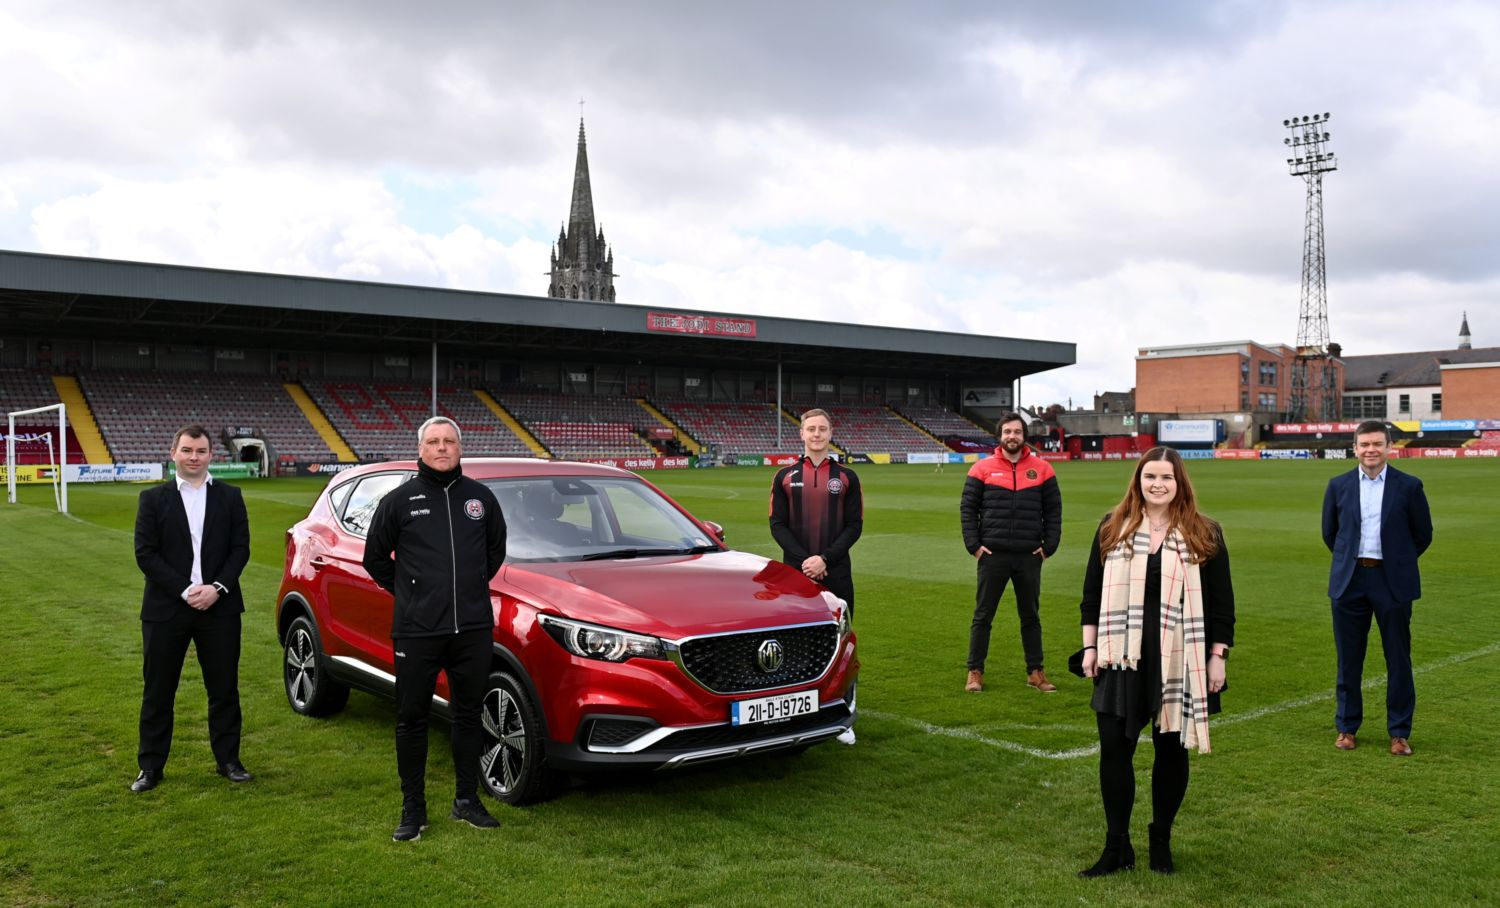 MG Motor Ireland Named The Official Electric Vehicle Sponsor of Bohemian FC